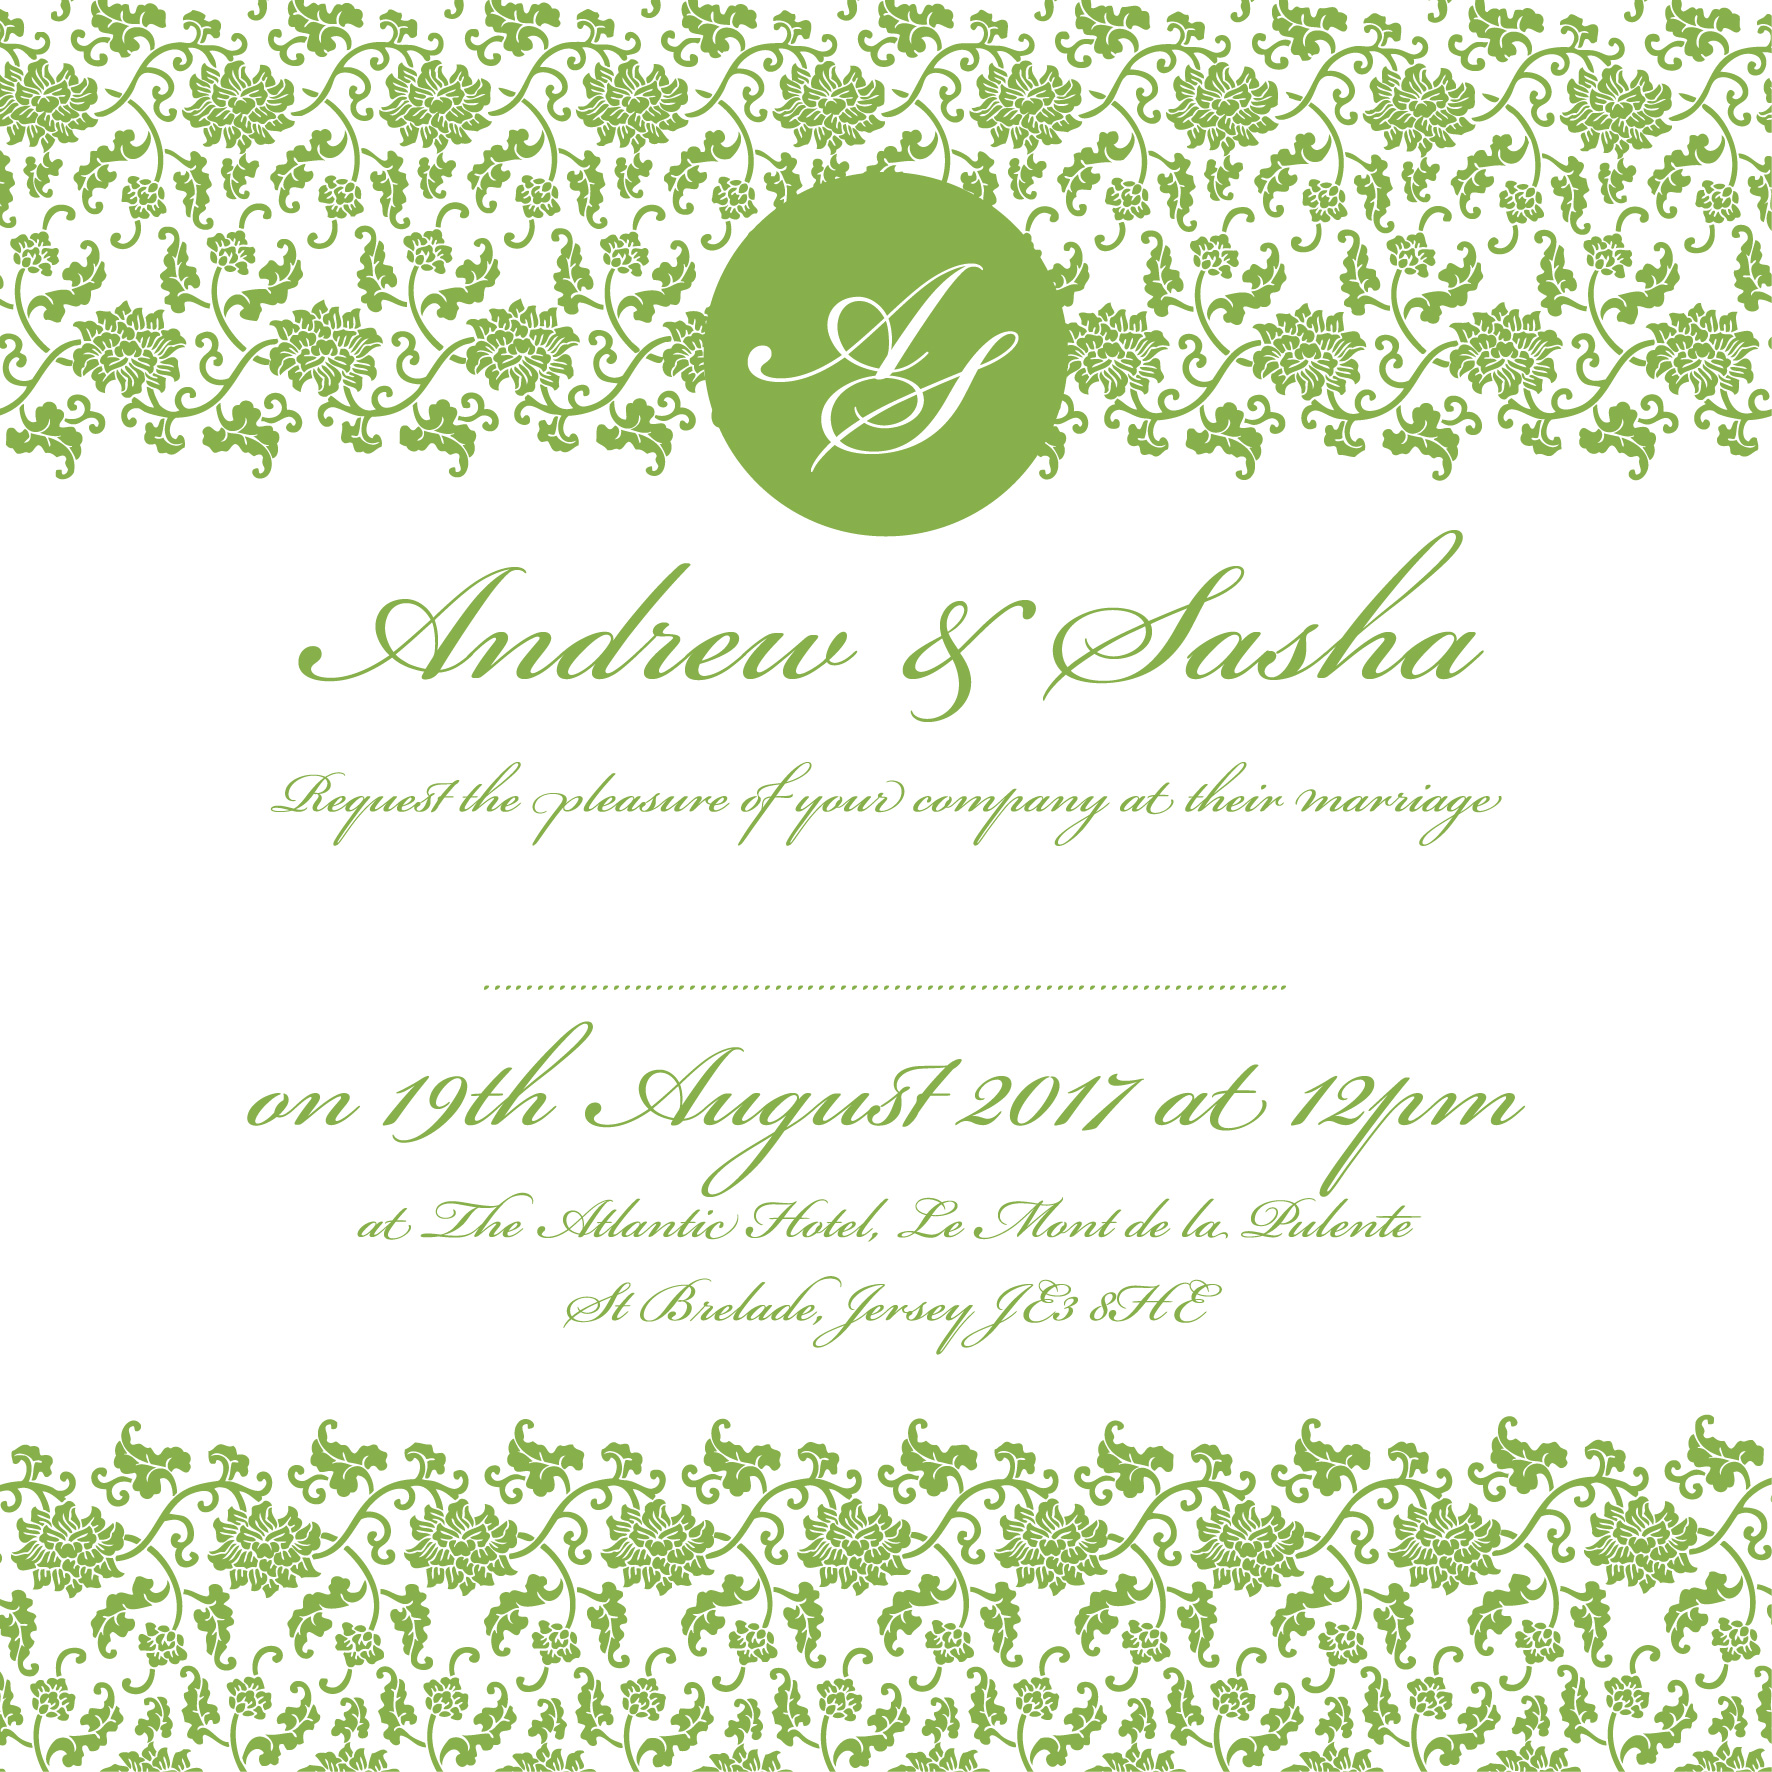 Pantone greenery wedding invitation_ananyacards.com